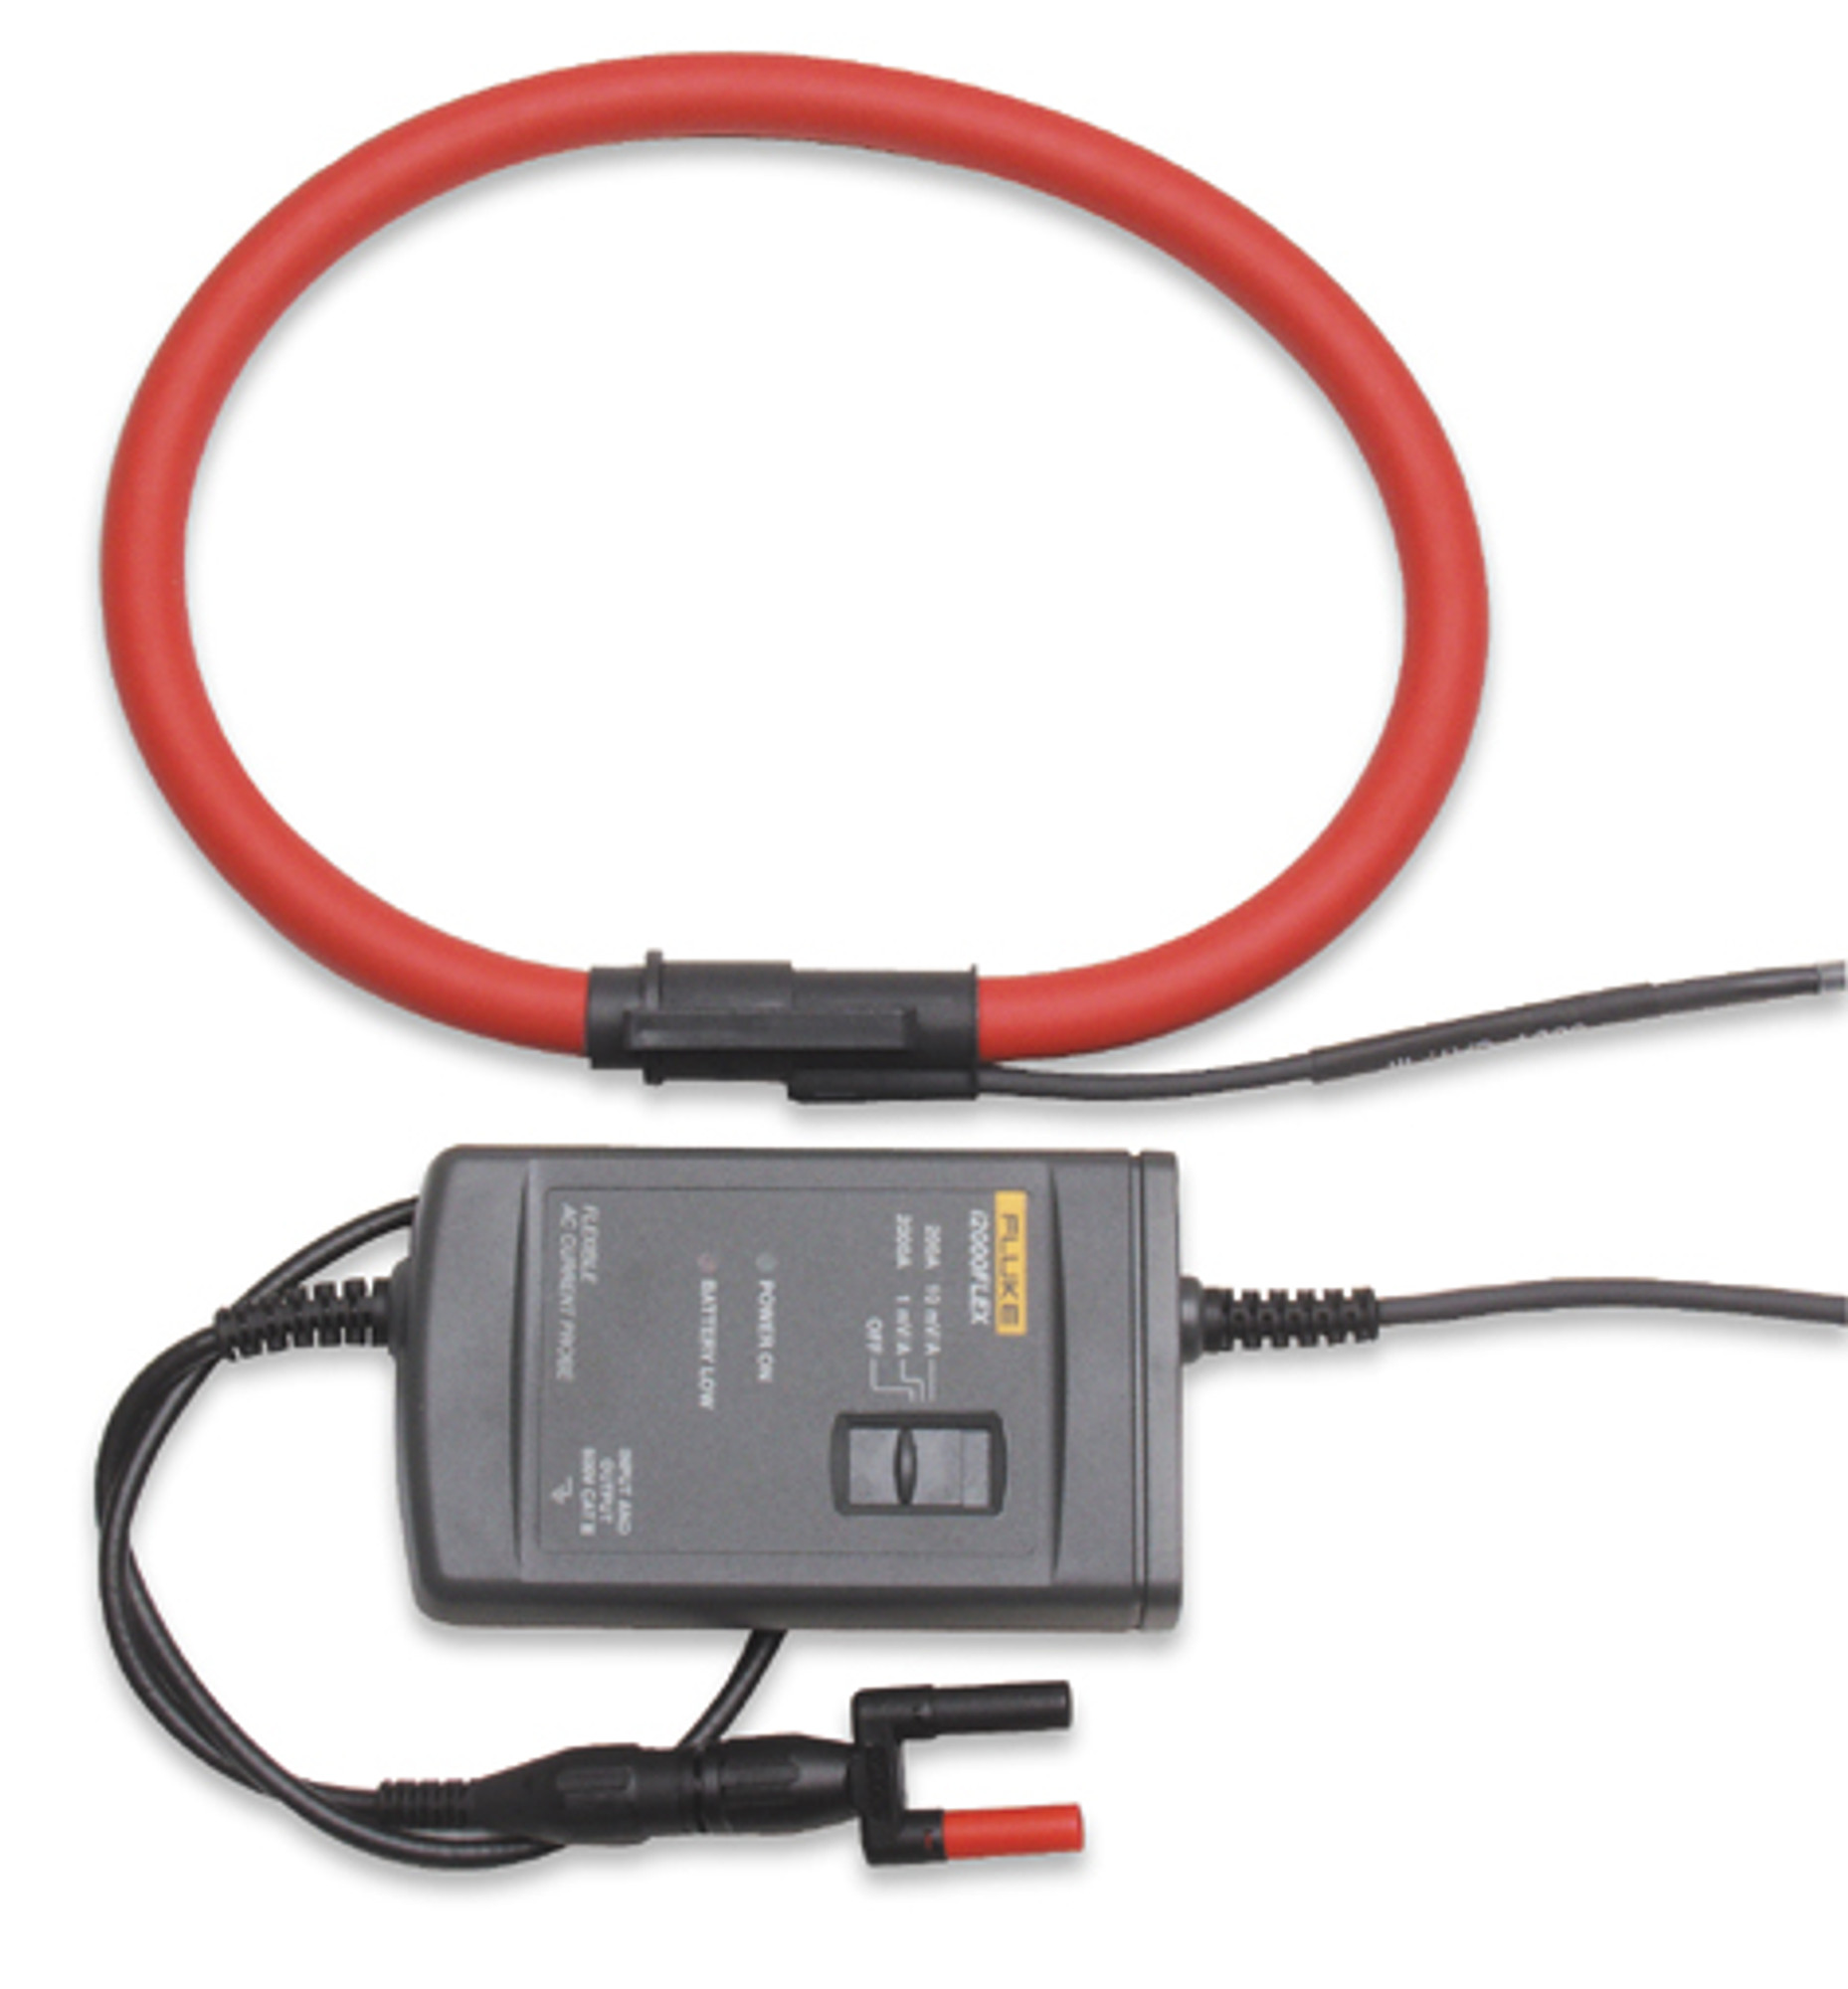 Flexible Current Clamp : Fluke i flex ac current clamp a precision fiber